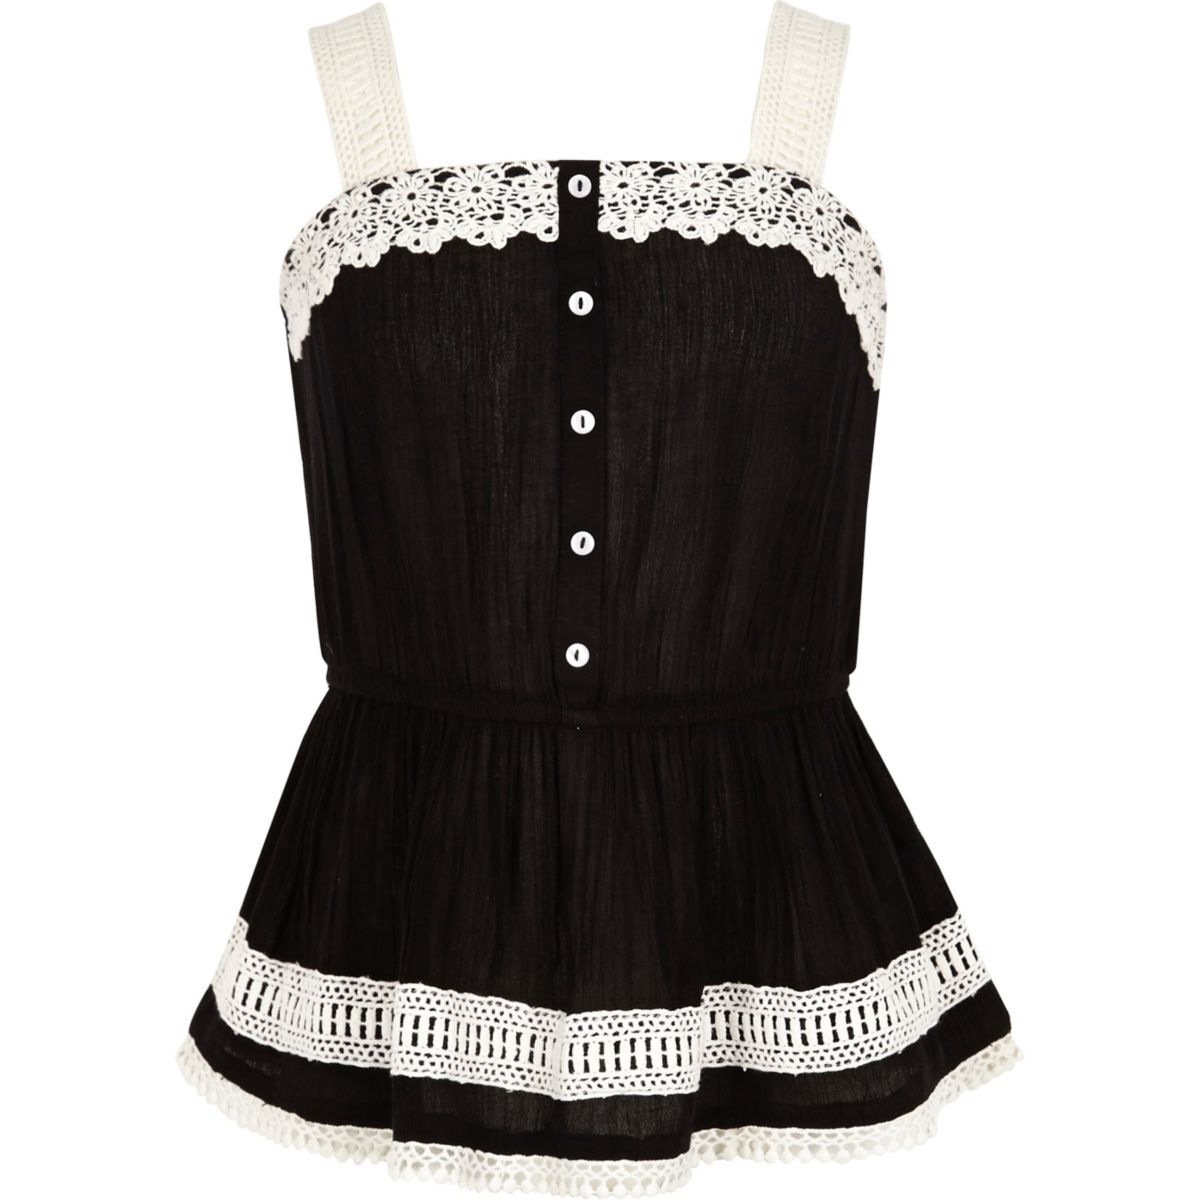 Girls black lace button-up cami top